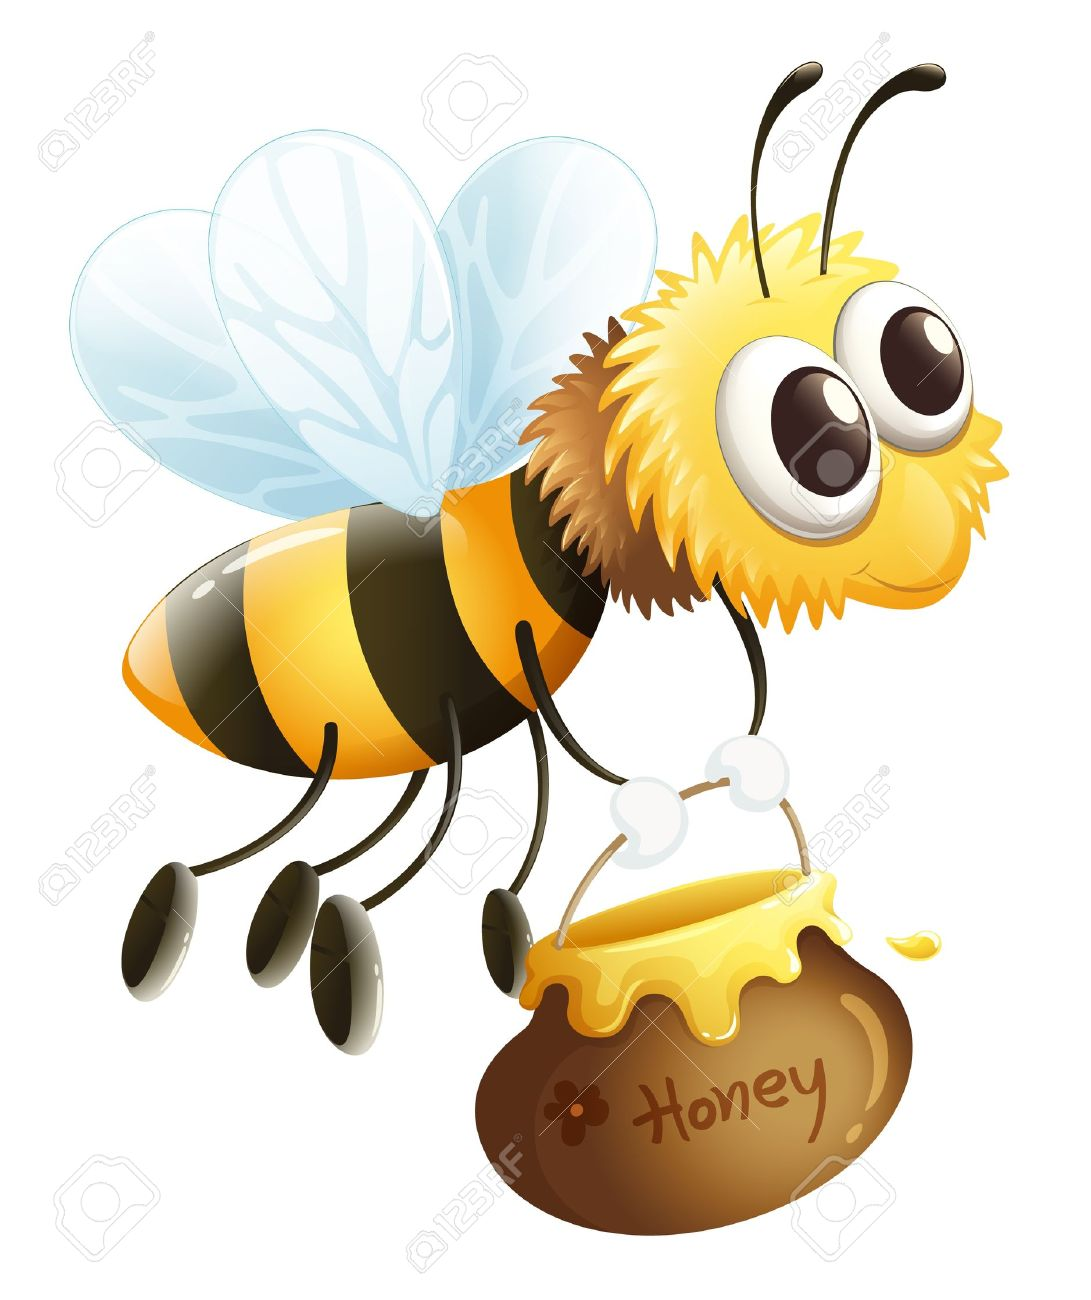 Illustration of a bee carrying a honey on a white background Stock Vector - 17358196